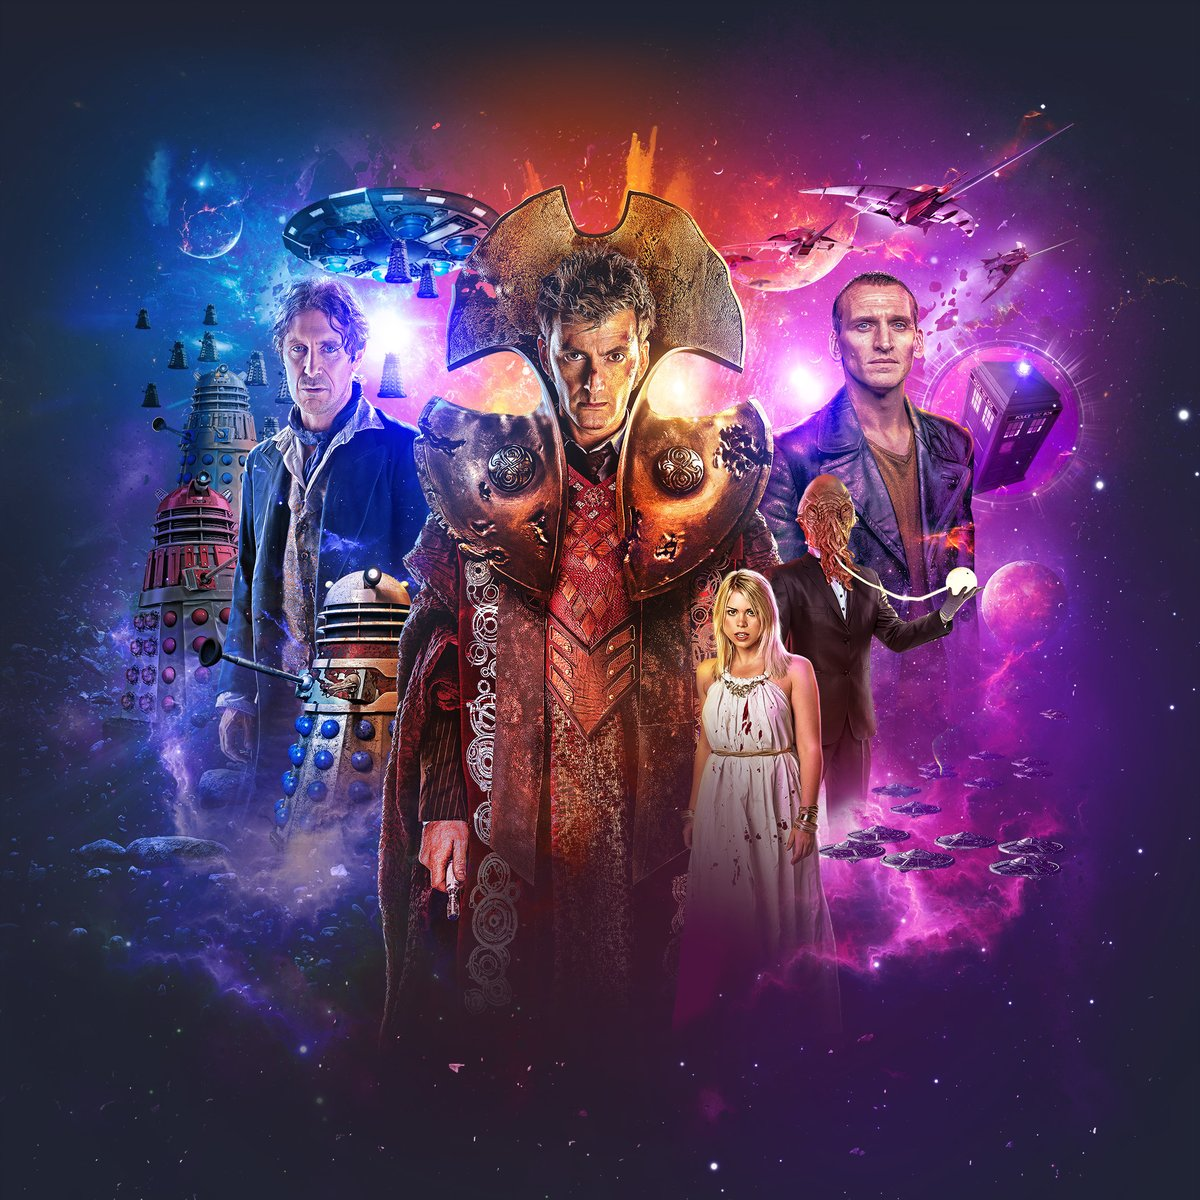 Find out how Brian and his adventures fit into the broader #TimeLordVictorious timeline here: https://t.co/eSSysDojno https://t.co/jpUoHHf7WK